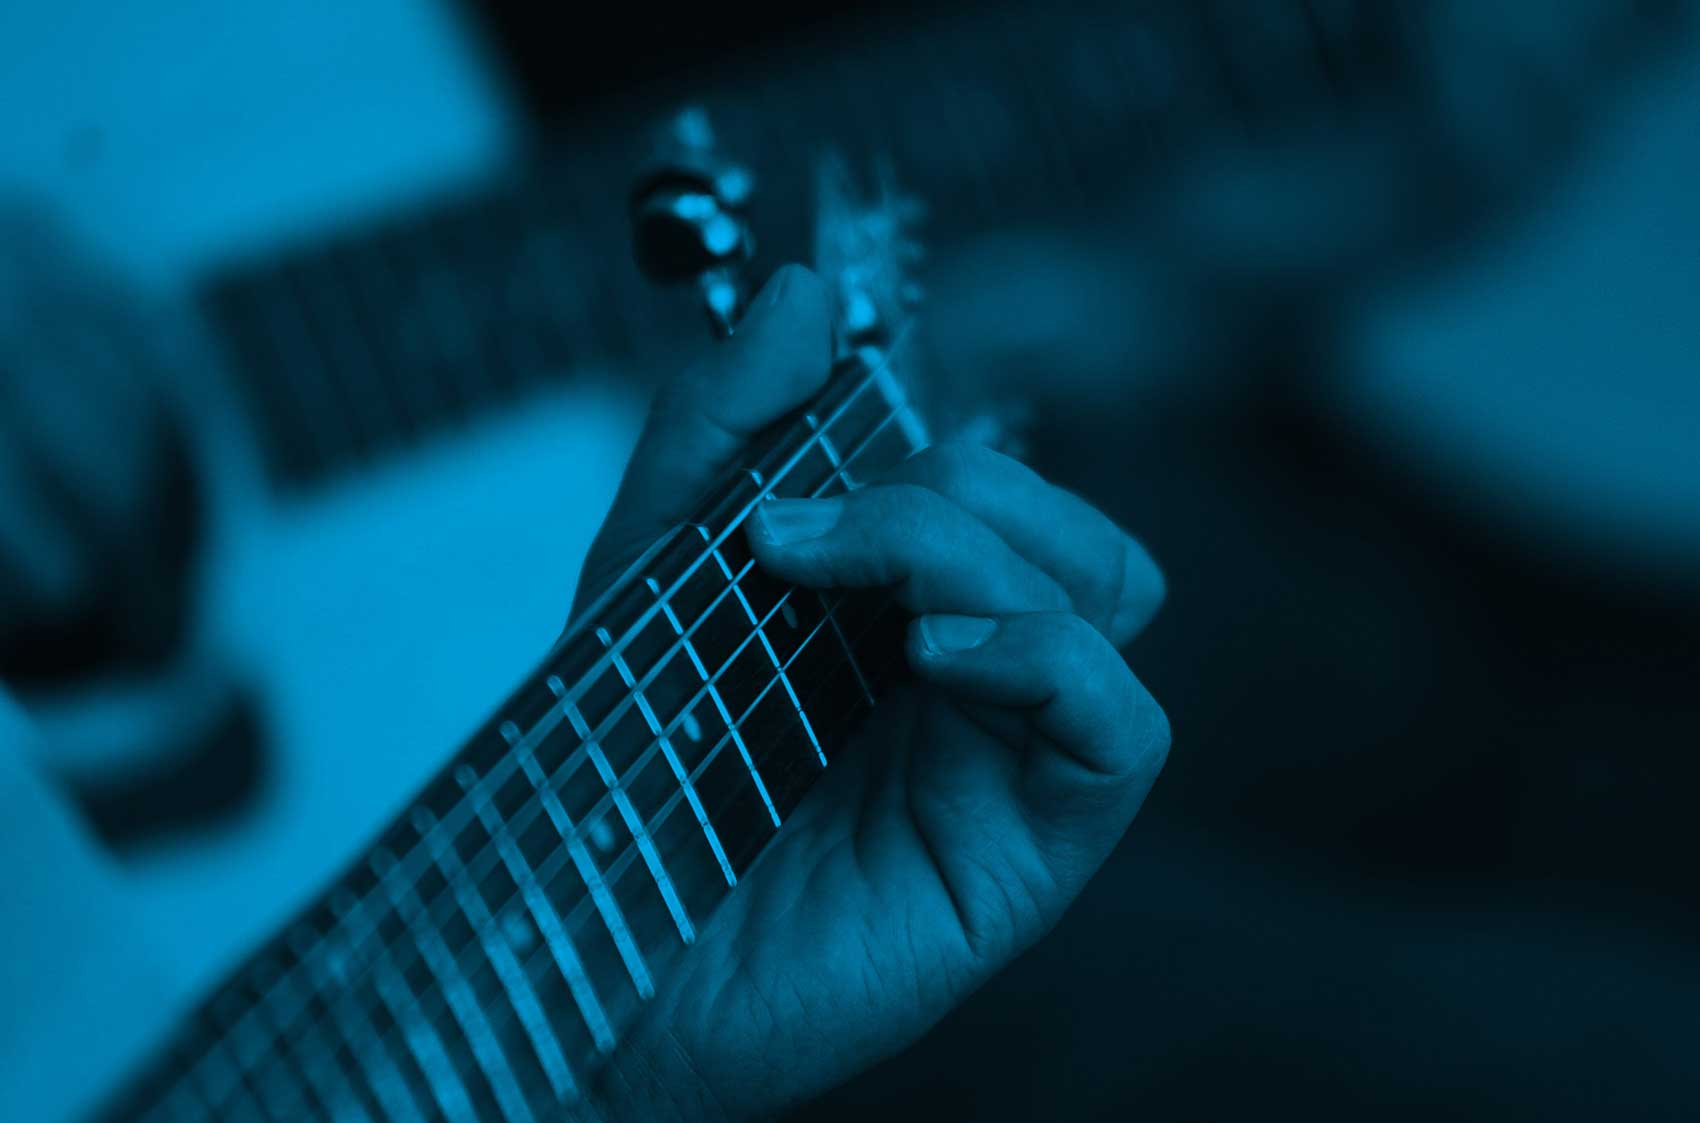 Background image showing a guitar